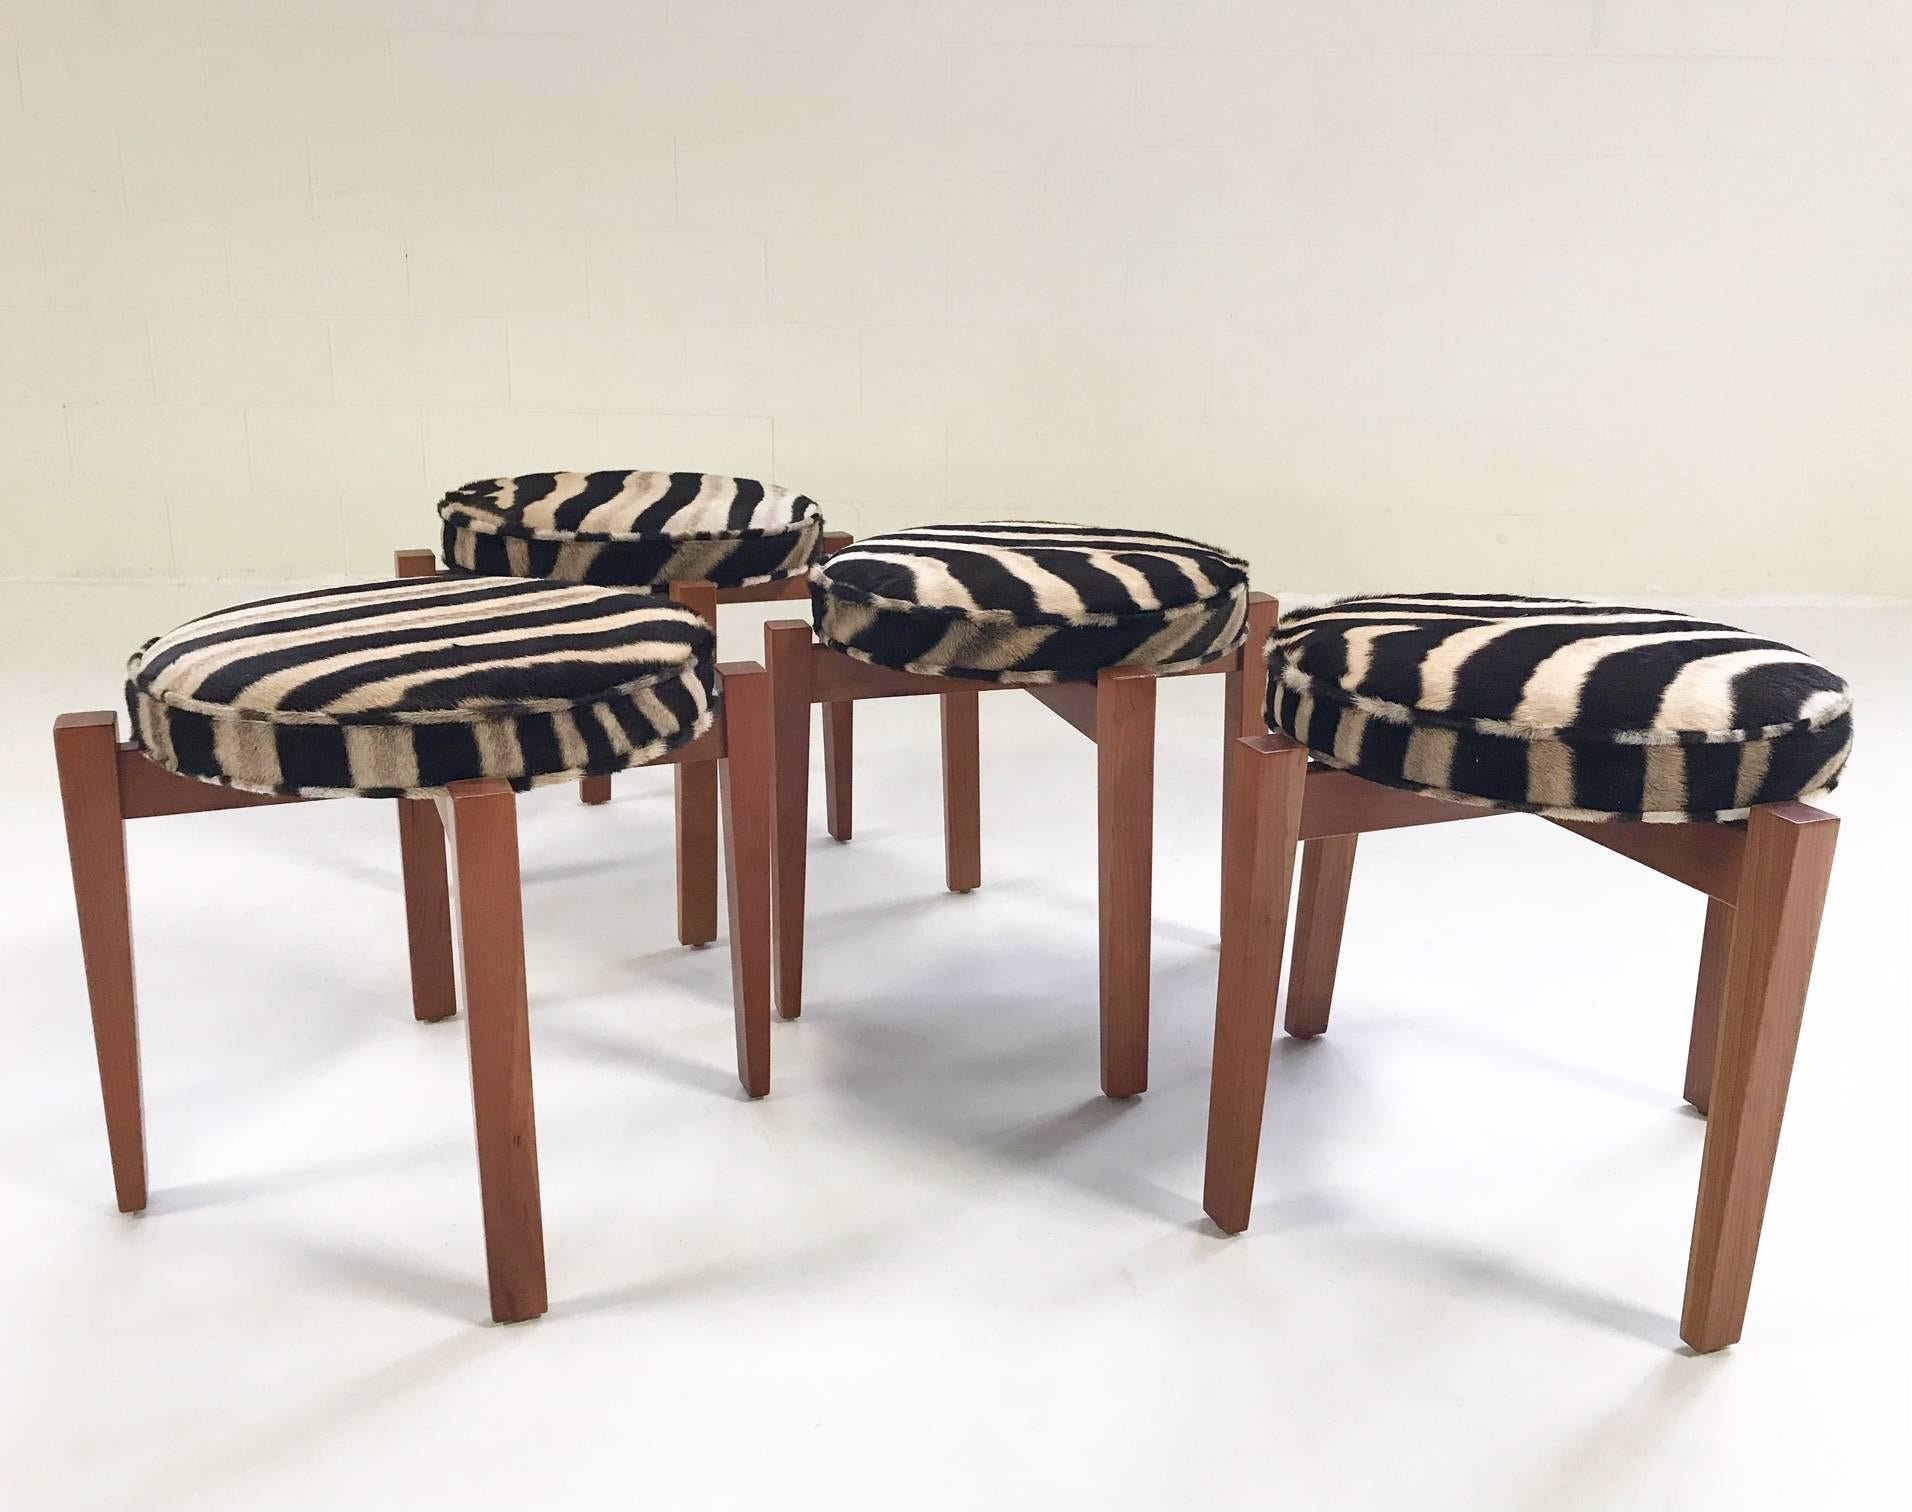 Jens Risom For Ralph Pucci Glasshouse Stools In Zebra Hide, Set Of Four For  Sale